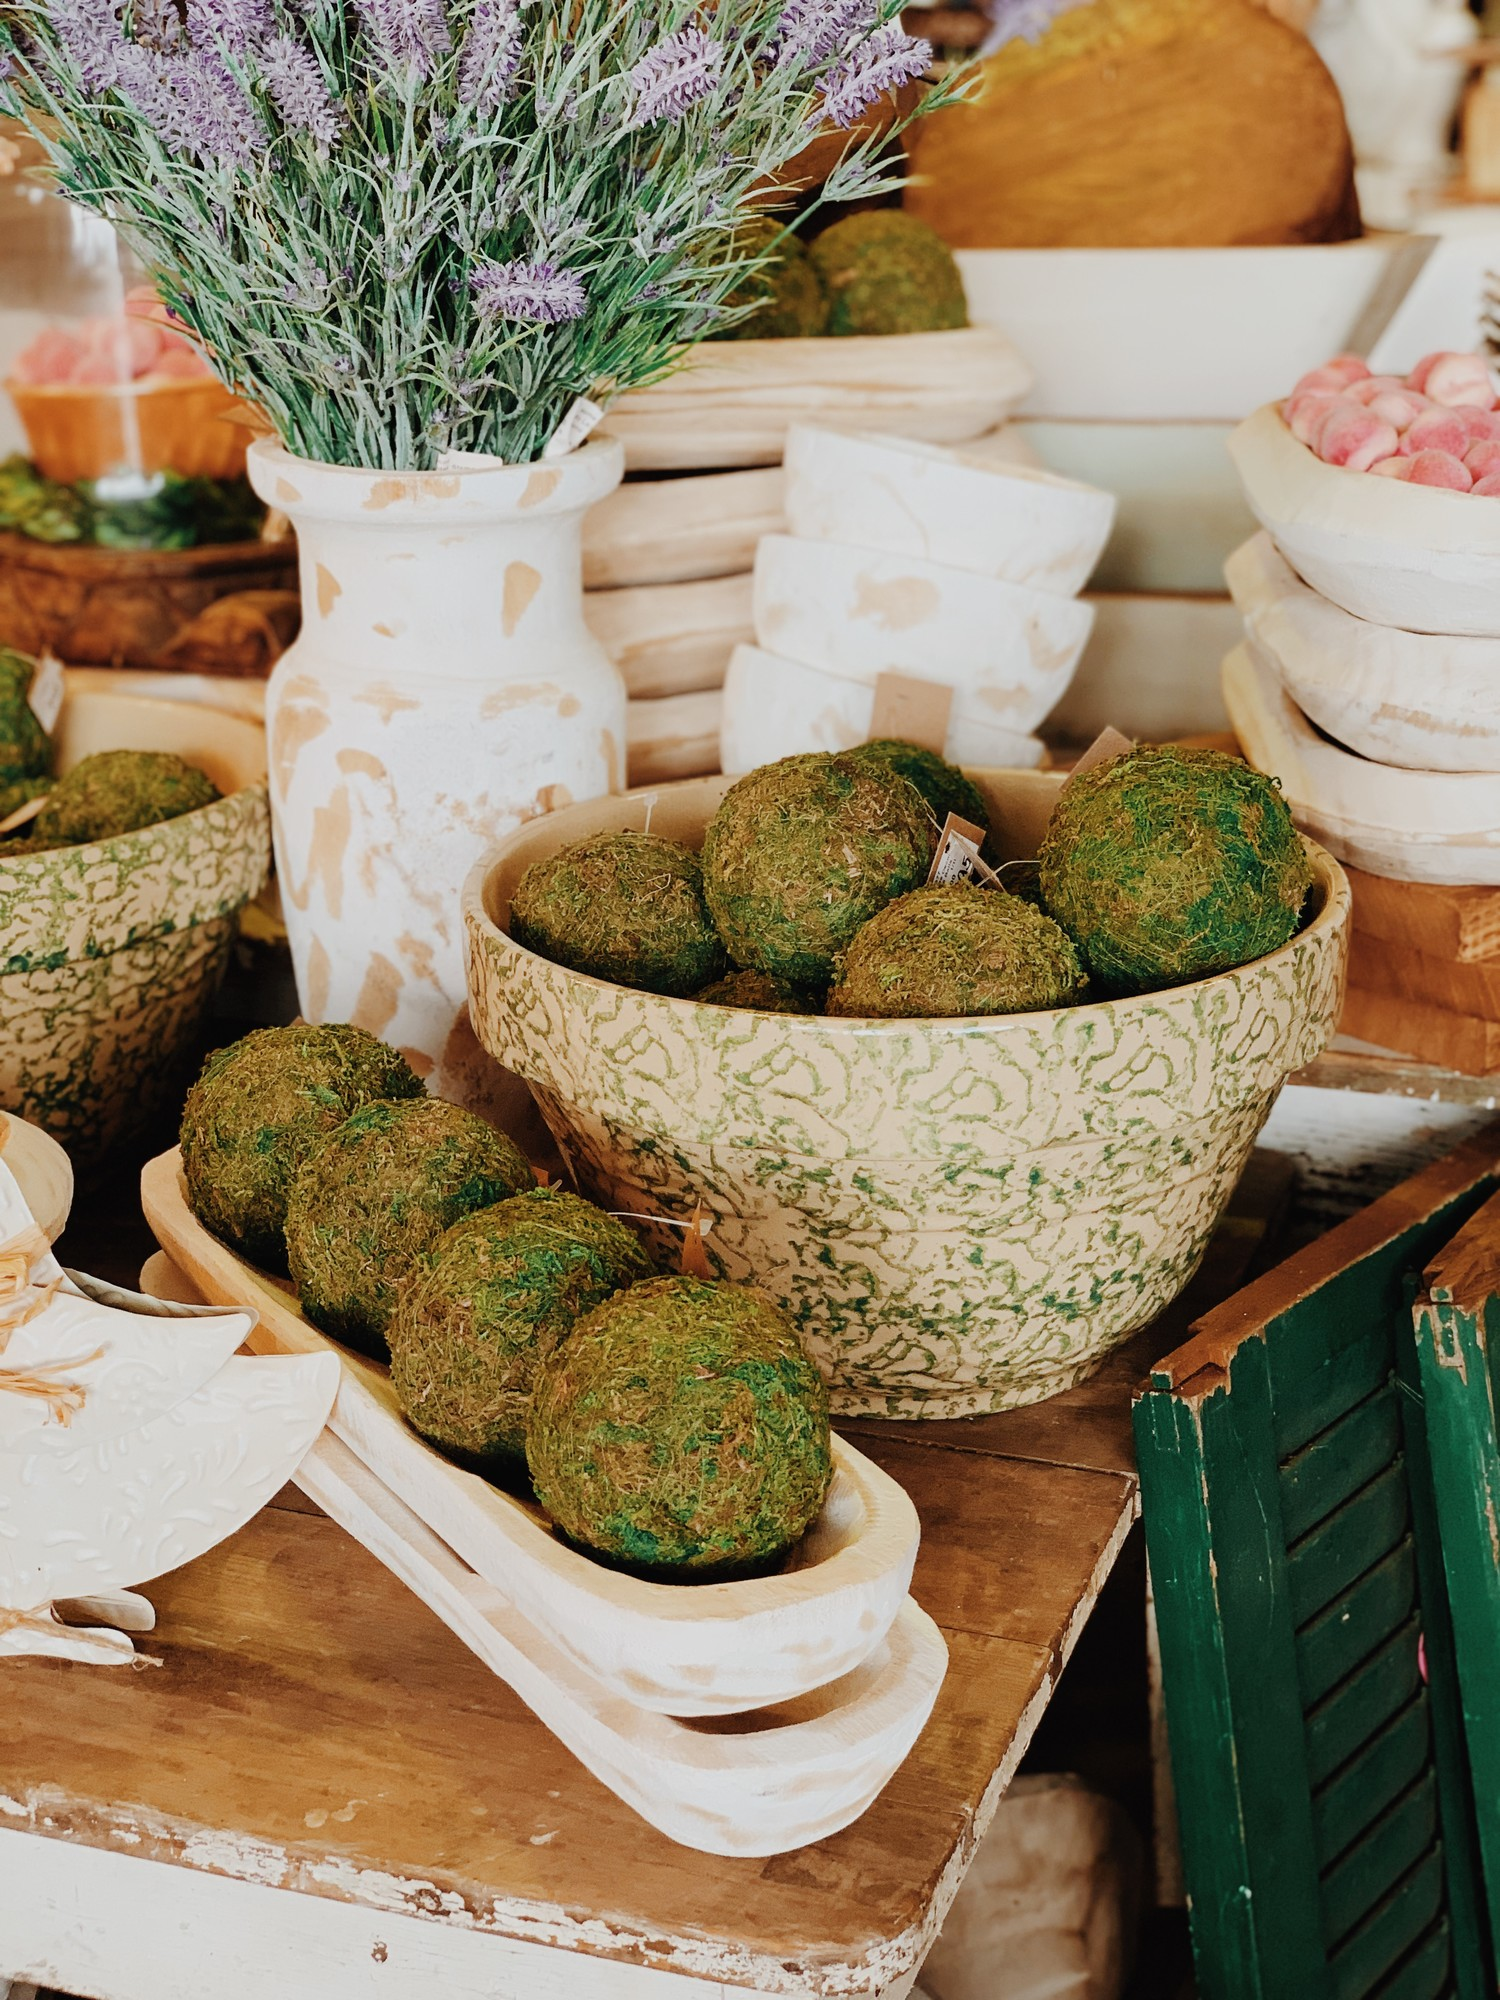 The green moss balls are great fillers for a jar or wooden dough bowl. Makes a pretty centerpiece. Each ball measures 4 inches.